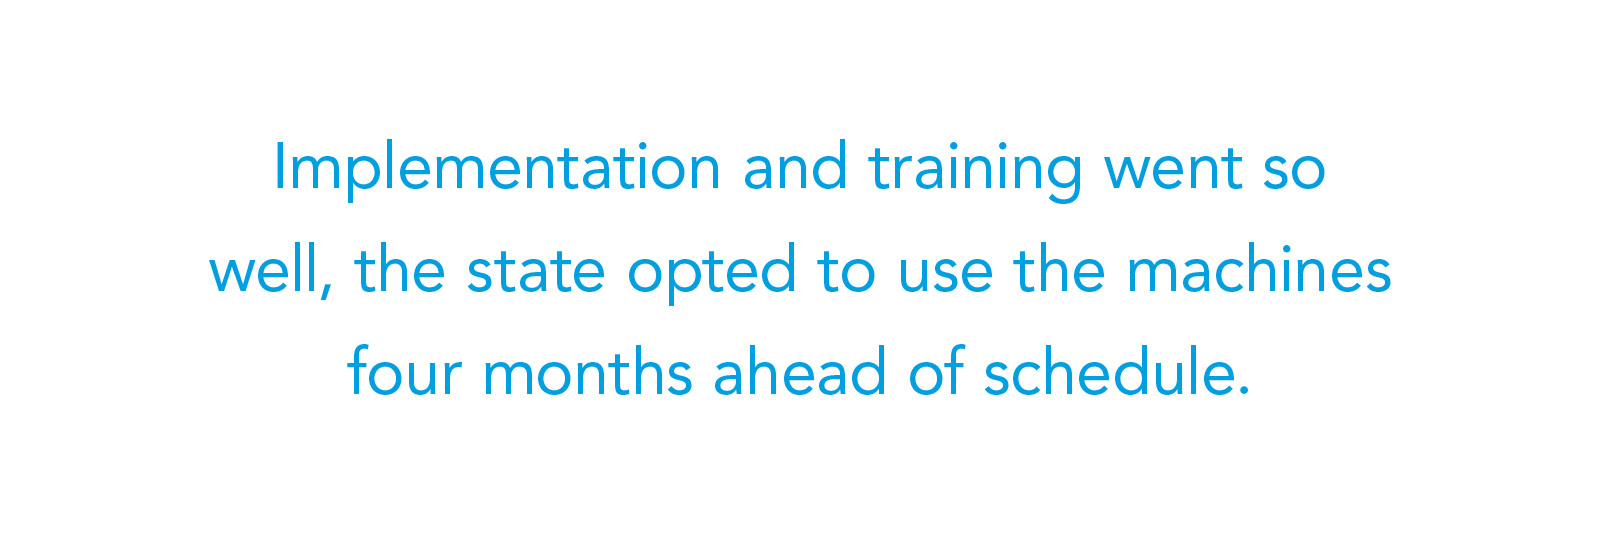 Implementation and training went so well, the state opted to use the machines four months ahead of schedule.